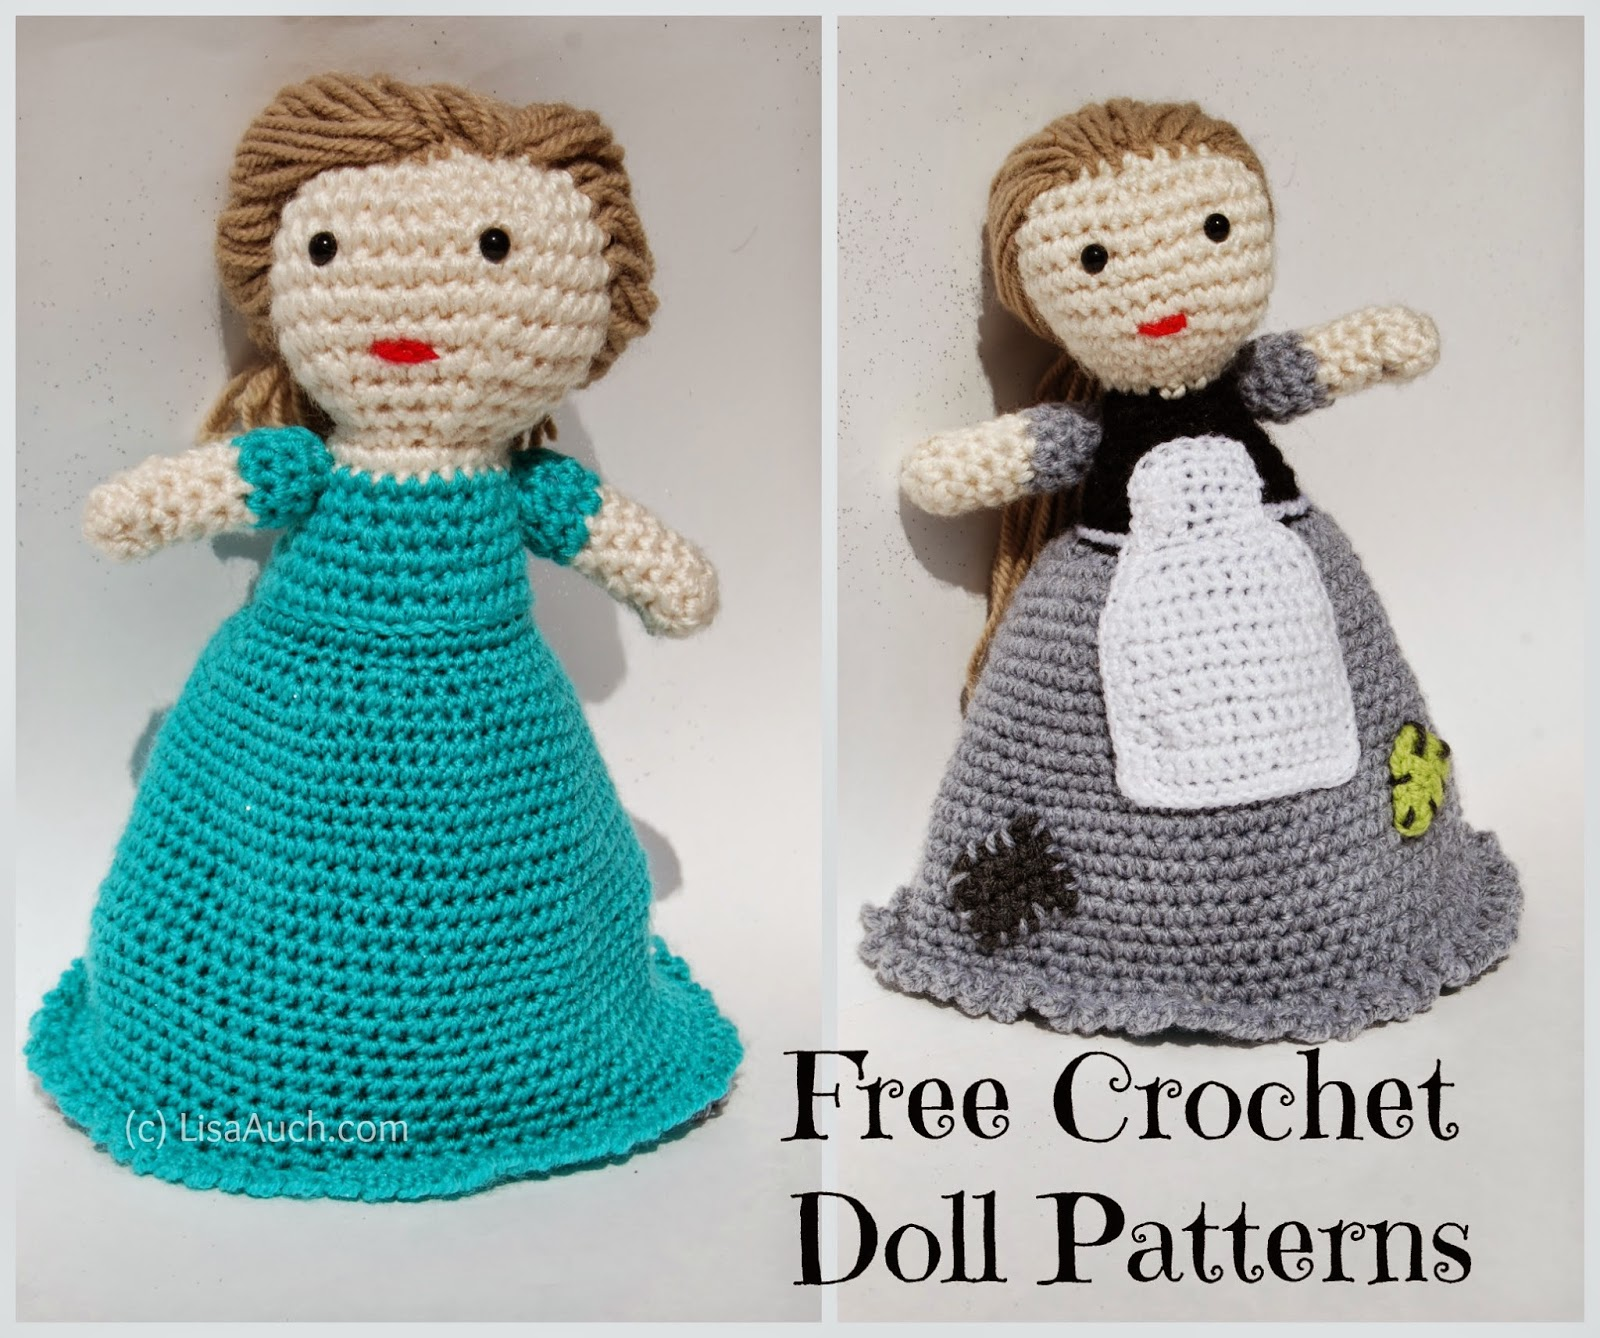 Crocheting Dolls : ... crochet doll patterns, free pattern for doll crochet, free doll